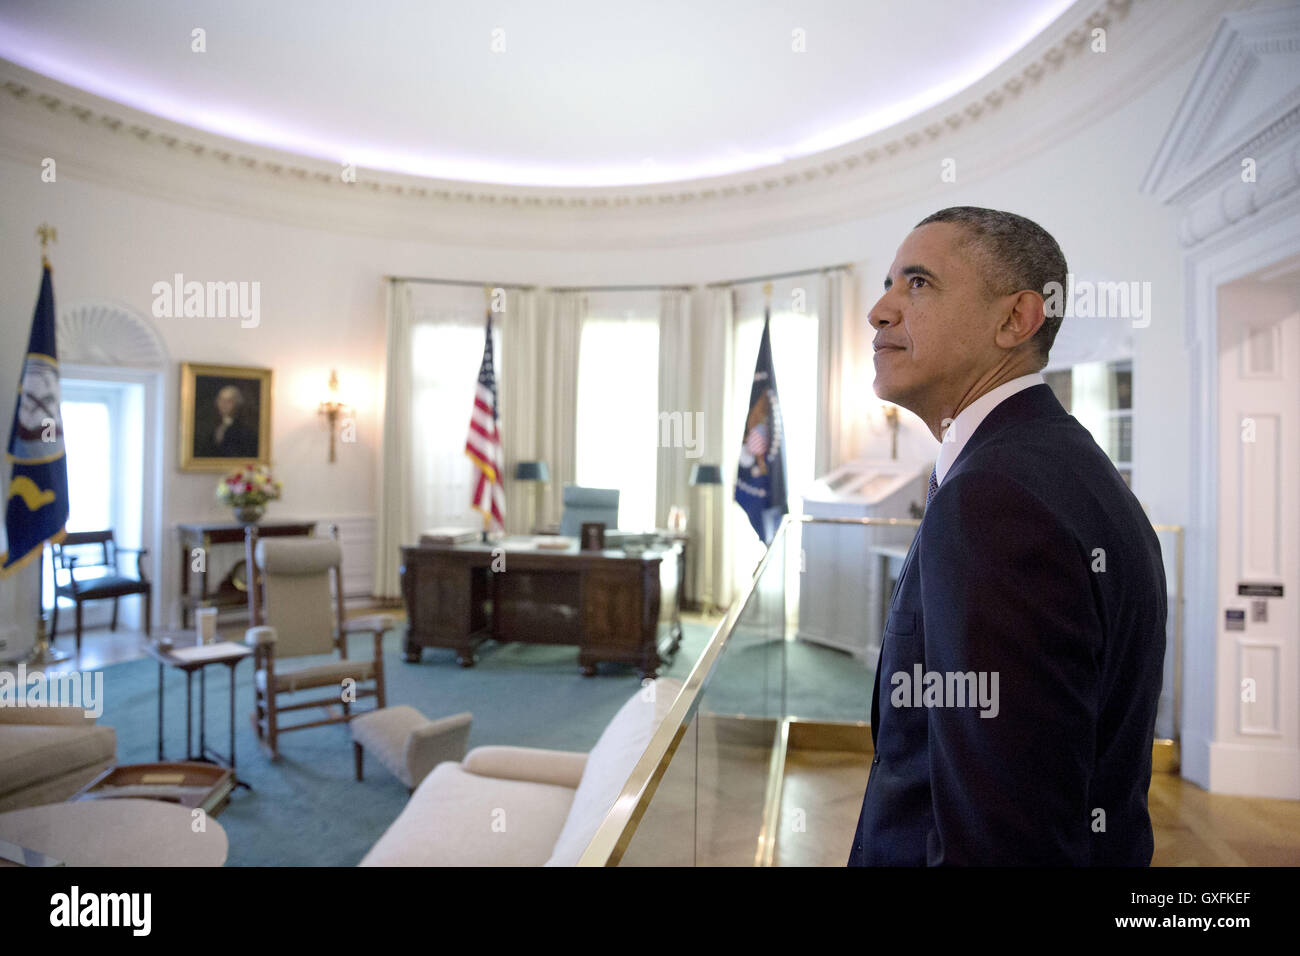 lbjs office president. U.S President Barack Obama Looks At A Replica Of The Oval Office LBJ Presidential Lbjs